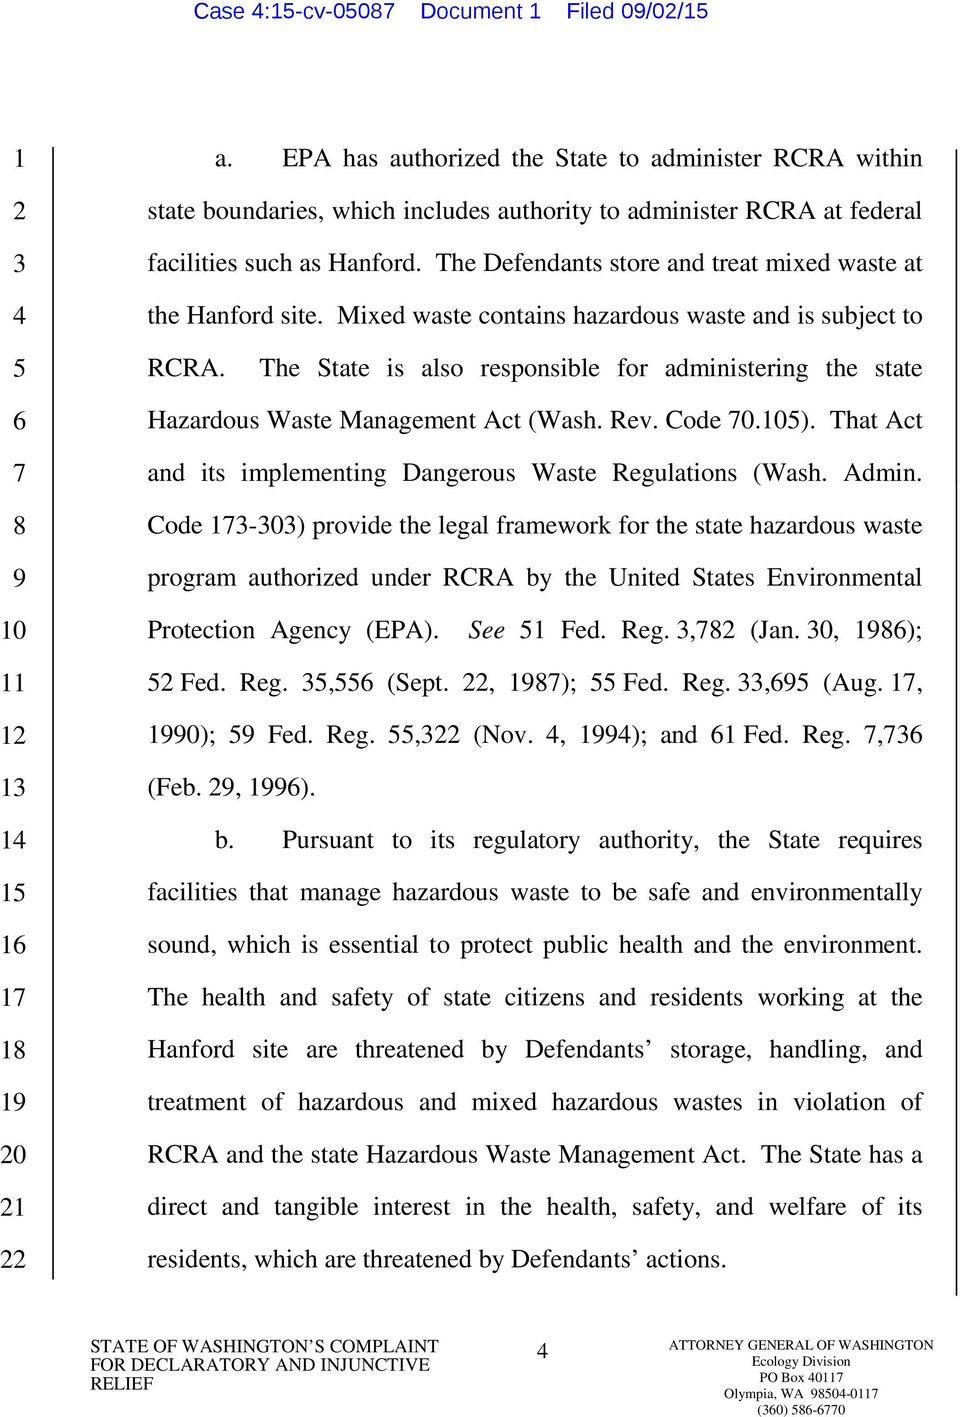 The State is also responsible for administering the state Hazardous Waste Management Act (Wash. Rev. Code 0.). That Act and its implementing Dangerous Waste Regulations (Wash. Admin.